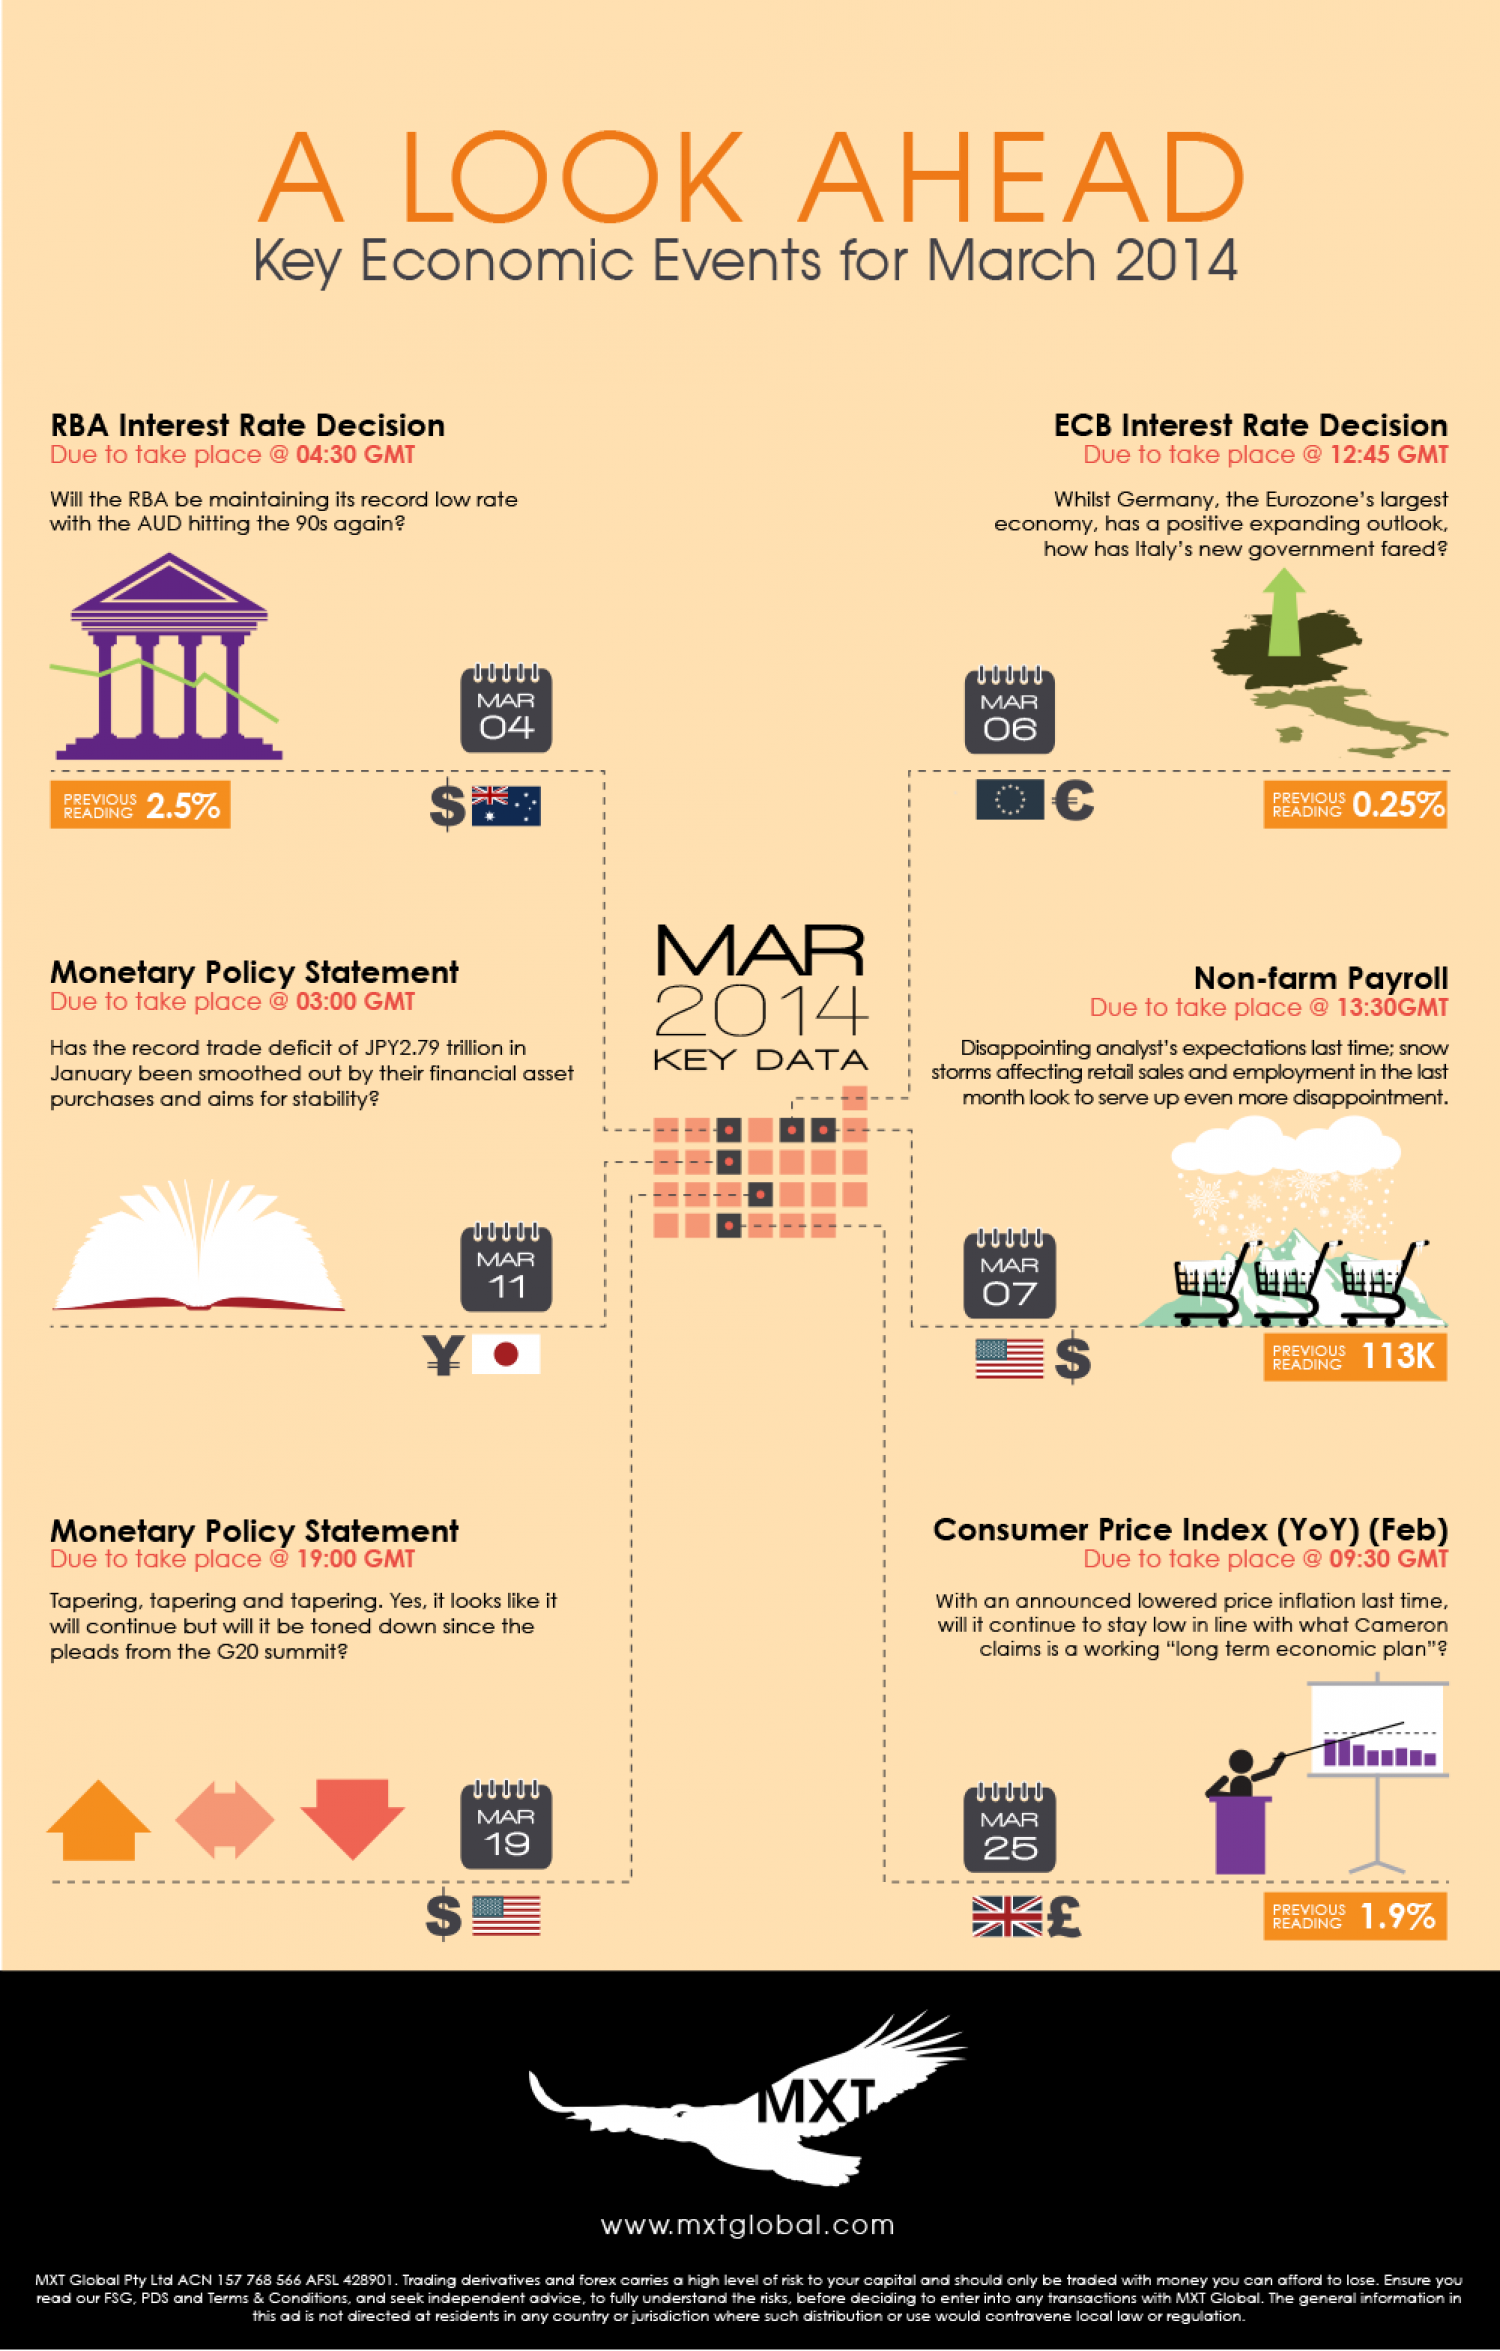 Key Economic Events for March 2014 Infographic